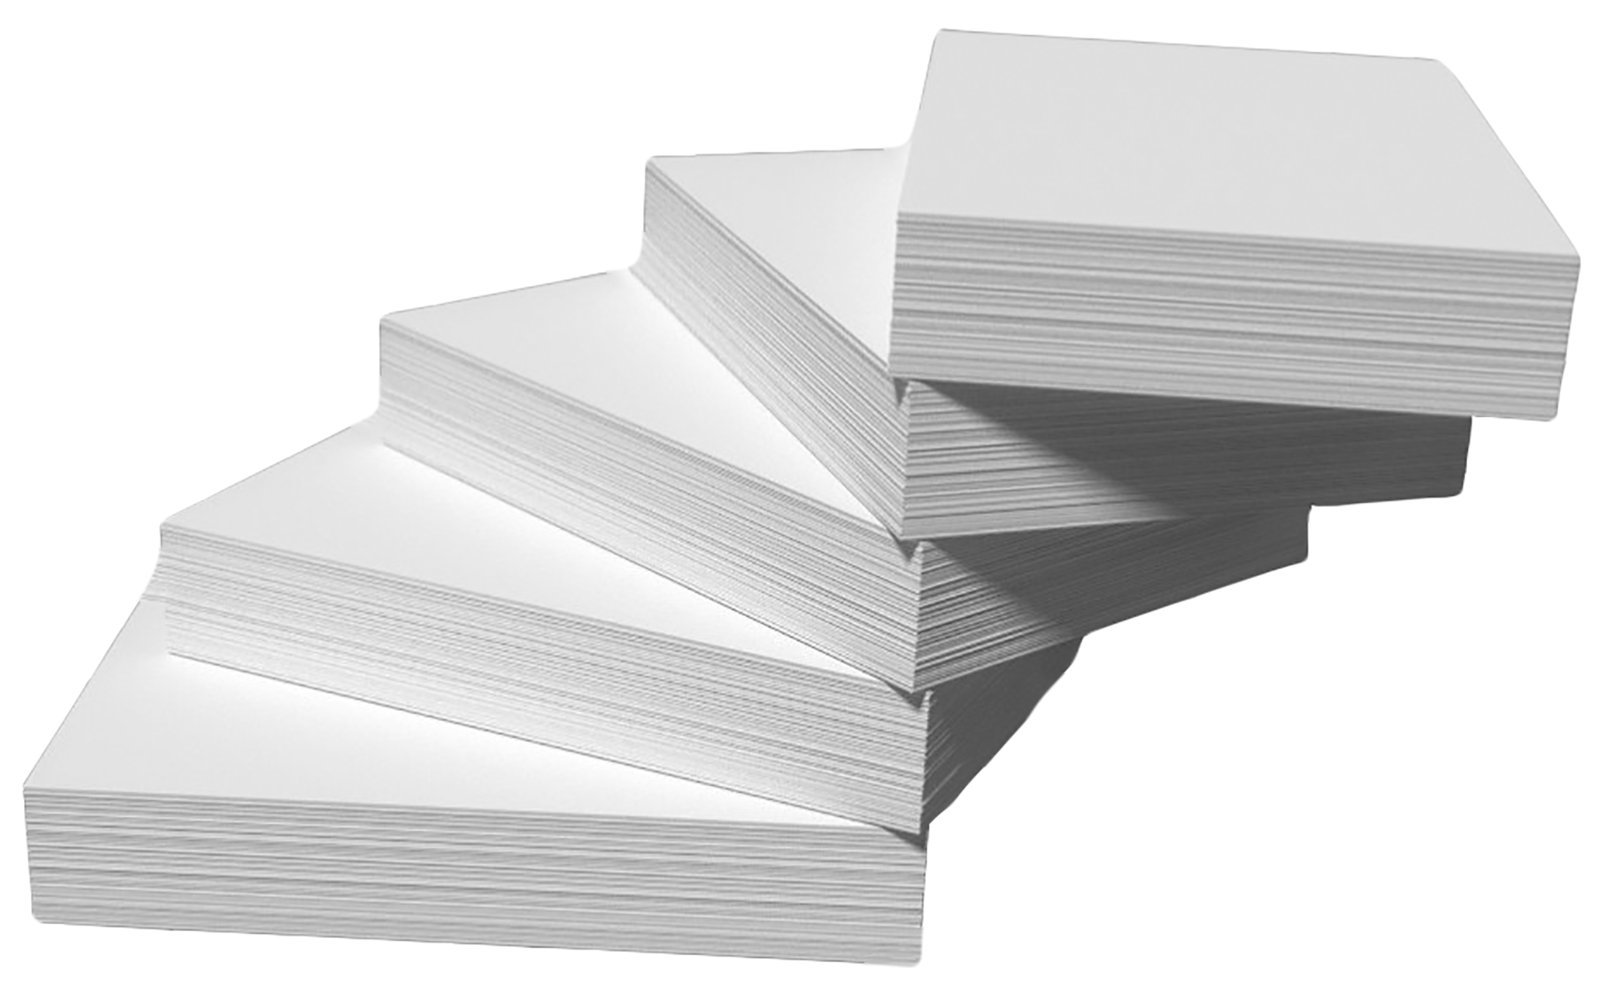 DEBRADALE DESIGNS - Blank Unruled Index Cards - 4 x 6 Inches - White - 500 Cards - 5 Packages of 100 - Standard 110# Index Card Stock - 199 GSM - .009 Thick by DEBRADALE DESIGNS